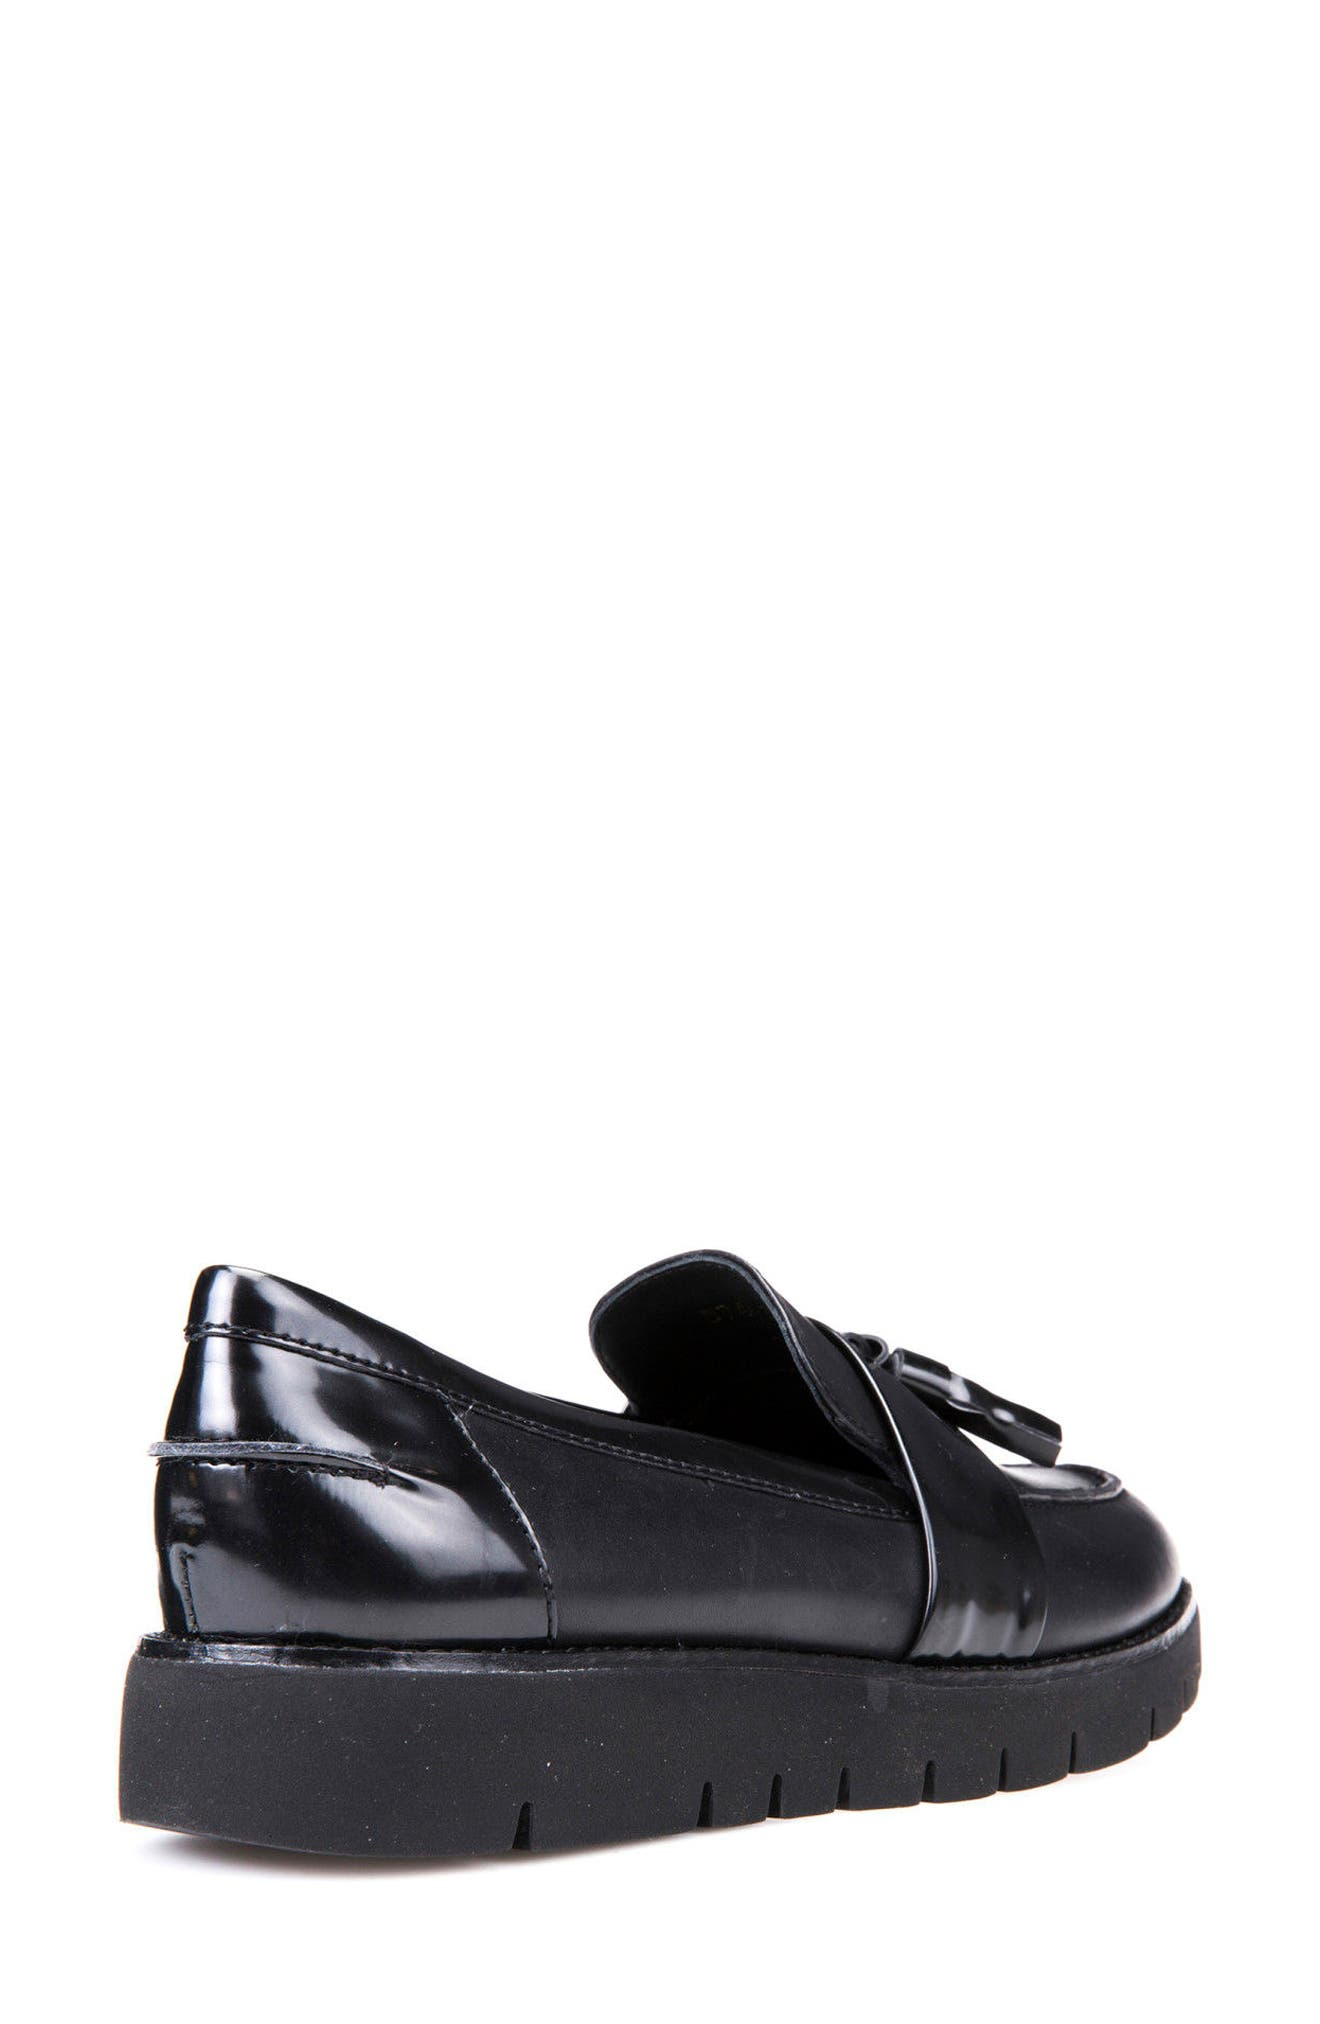 Blenda Tassel Loafer,                             Alternate thumbnail 2, color,                             001